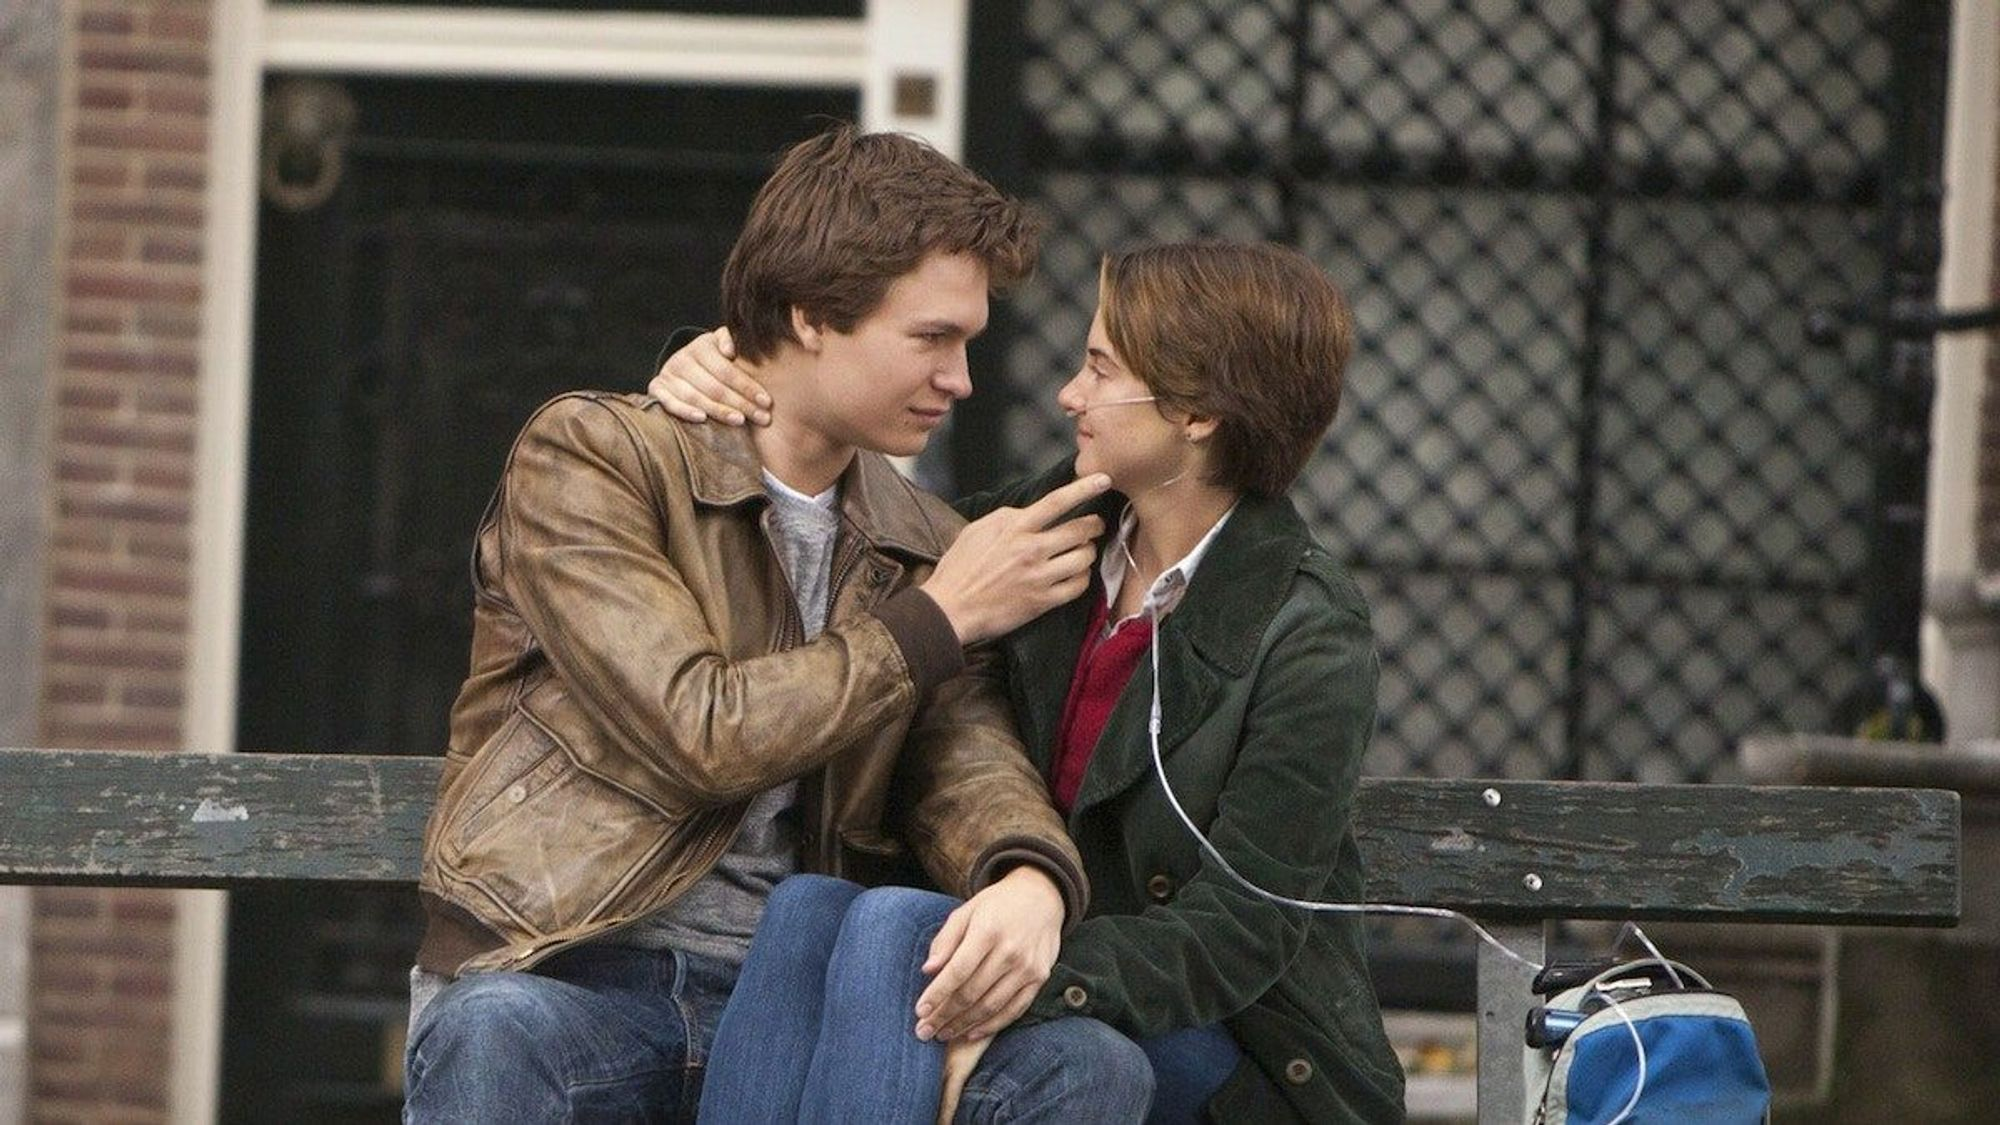 How to Watch The Fault in Our Stars on Netflix - Best VPNs To Use